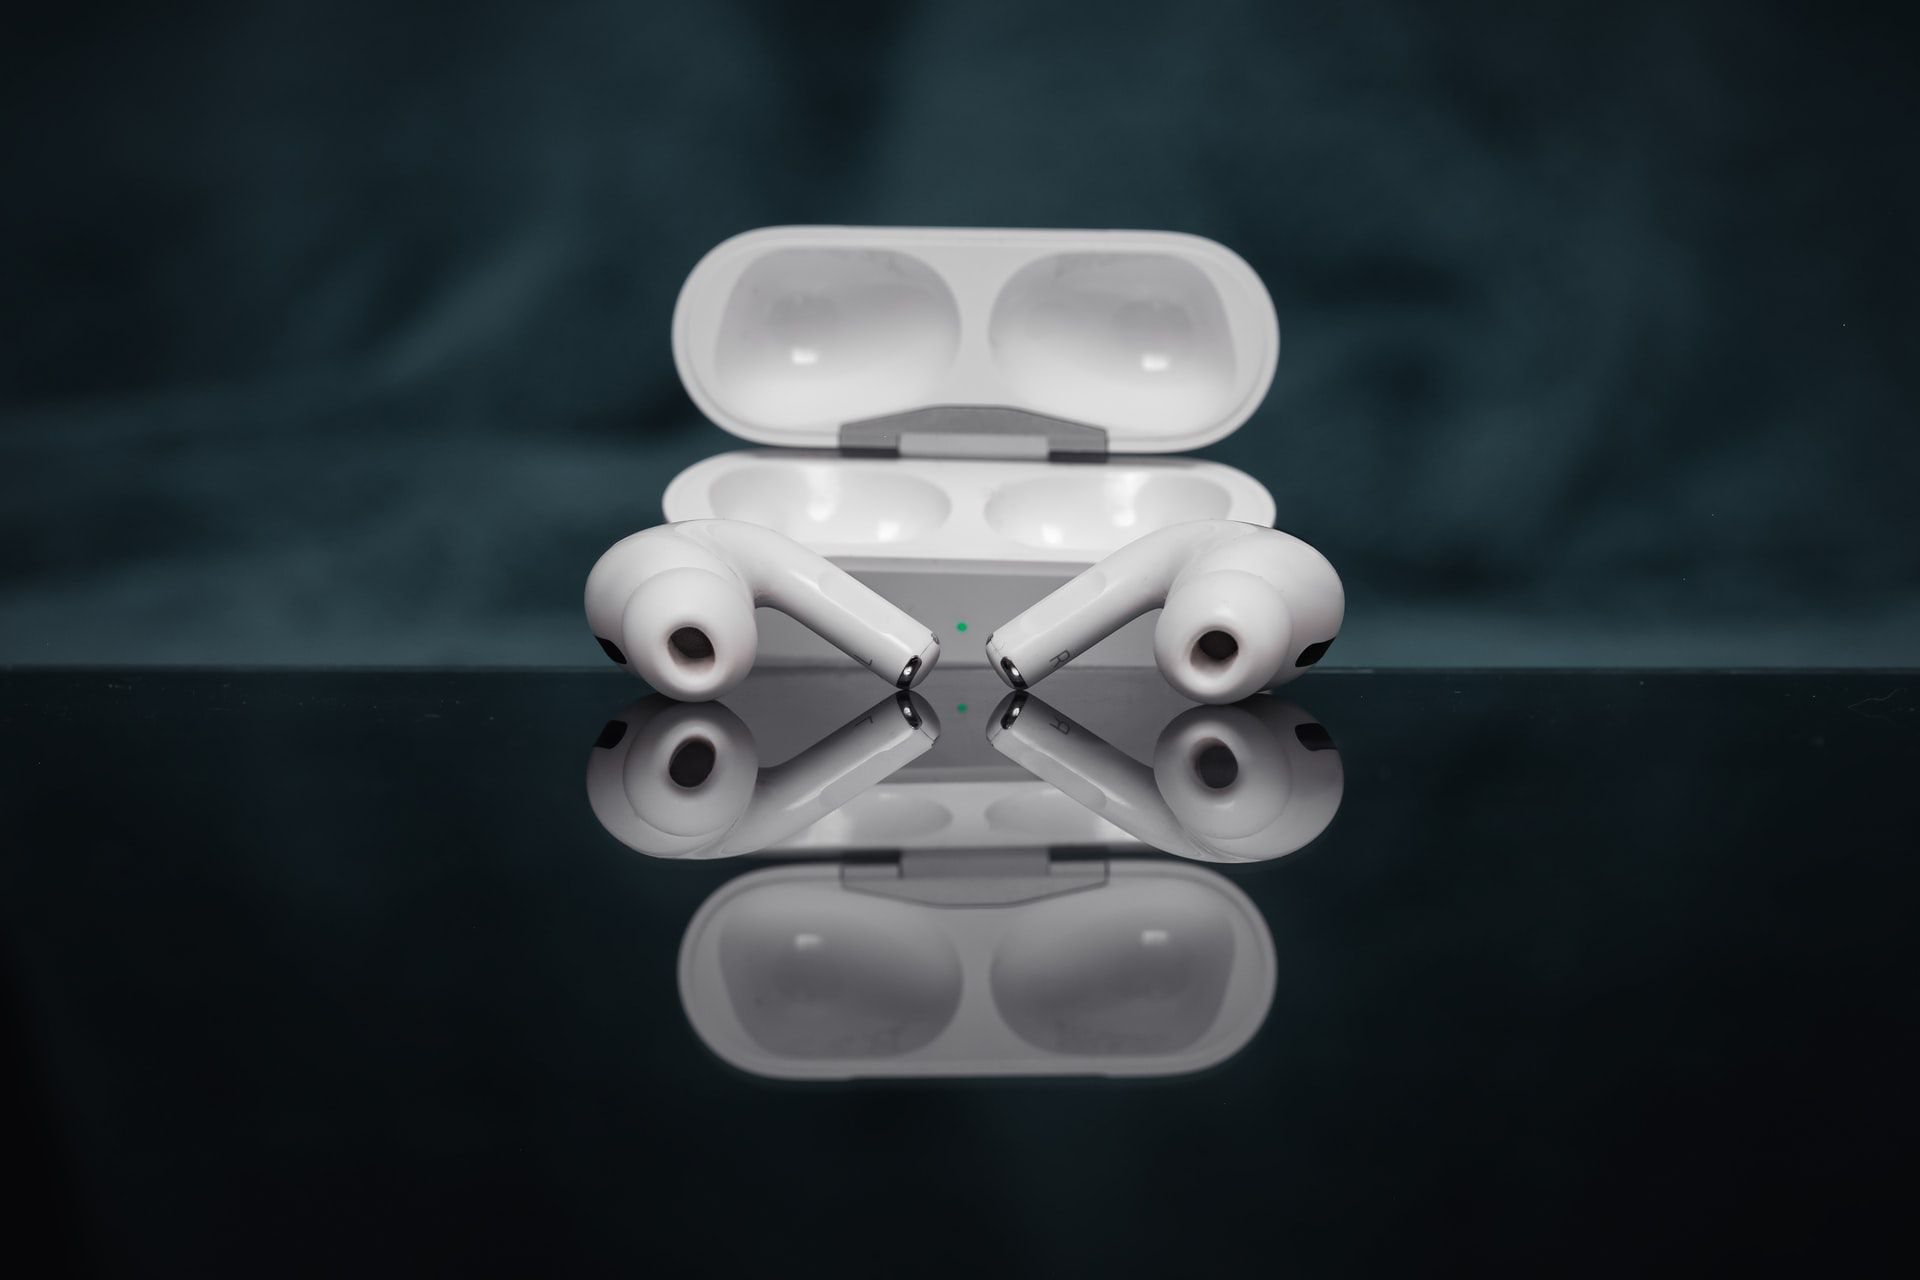 Apple AirPods Pro on a reflective surface